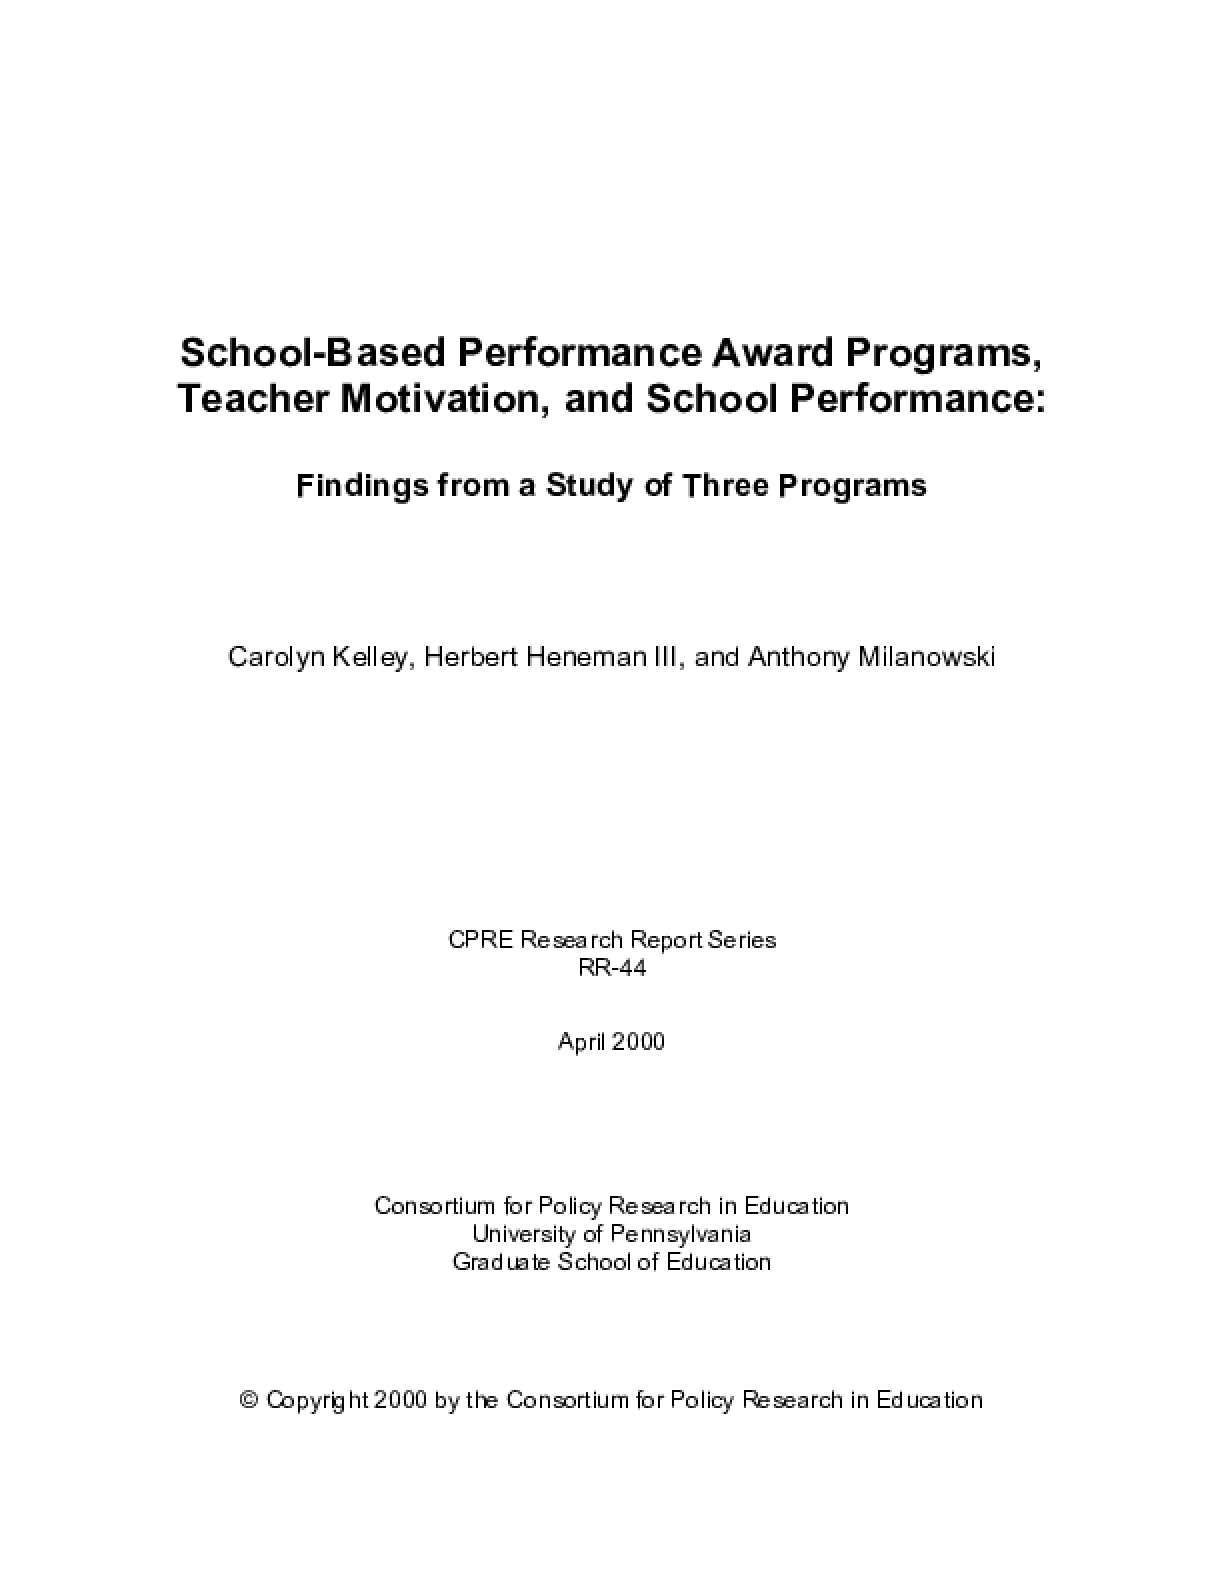 School-Based Performance Award Programs, Teacher Motivation, and School Performance: Findings From a Study of Three Programs